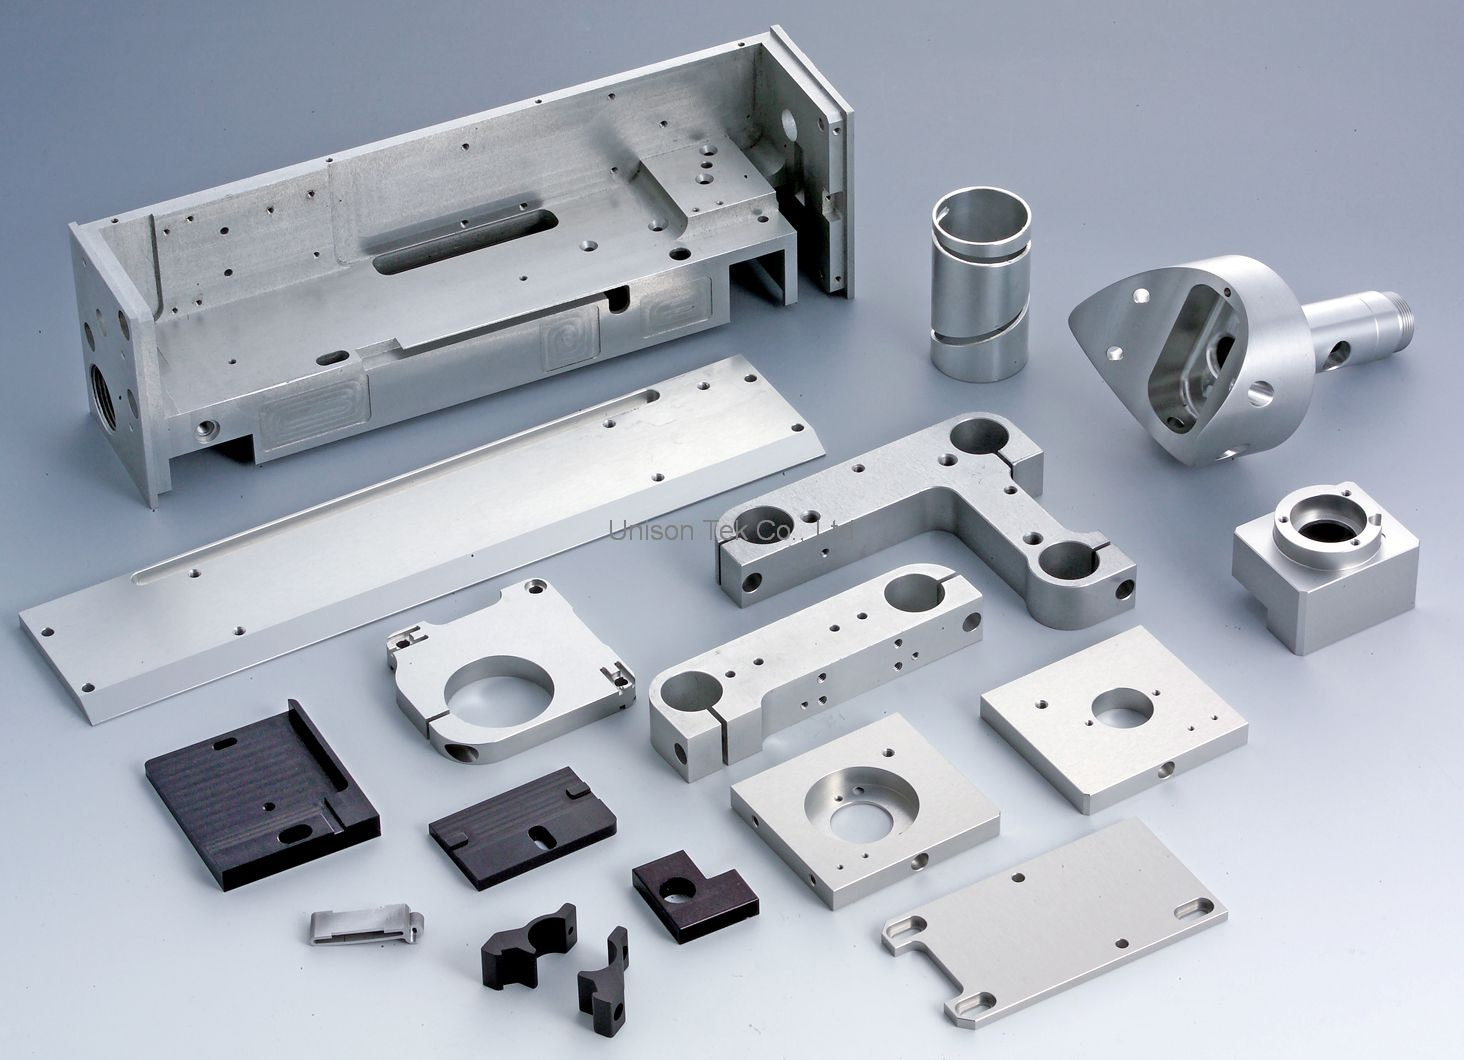 precision cnc milling parts from Unison Tek